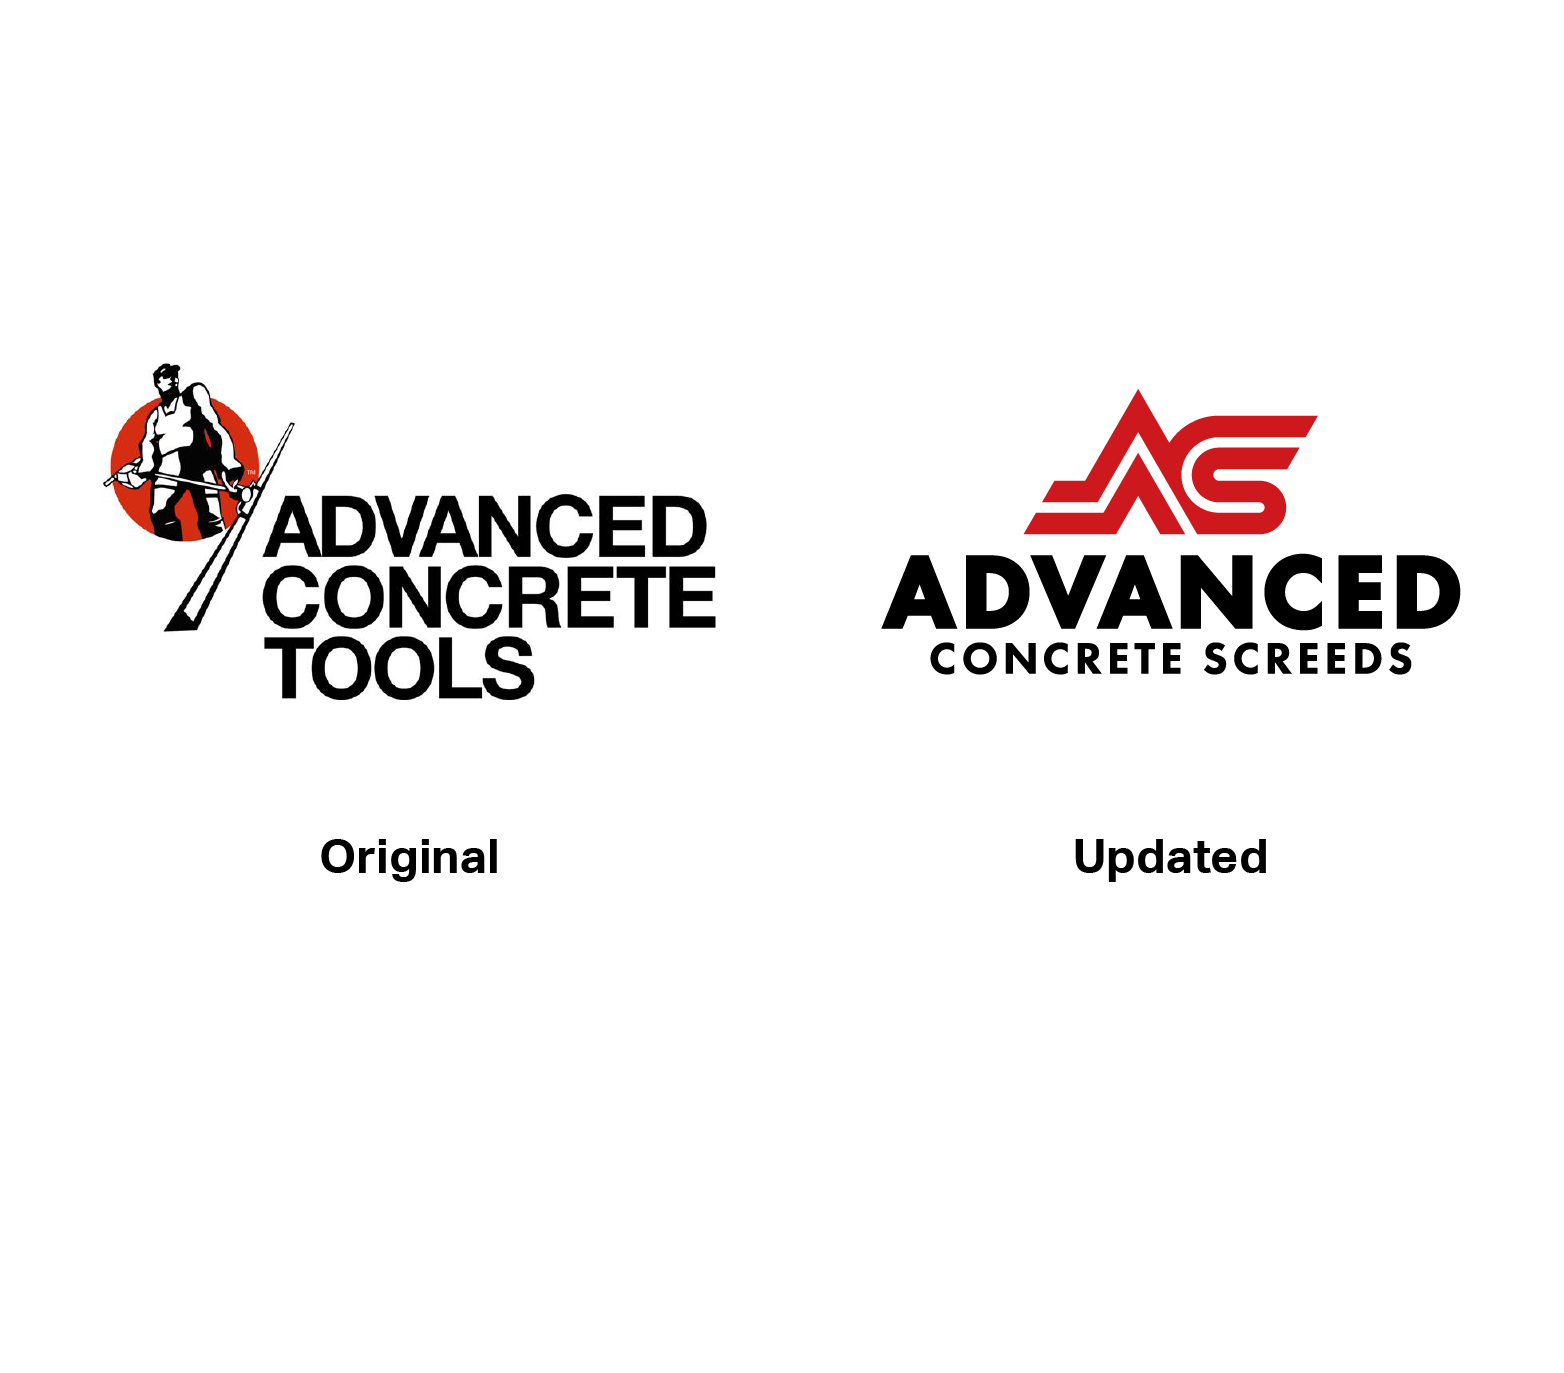 ACS_before_after-01.png